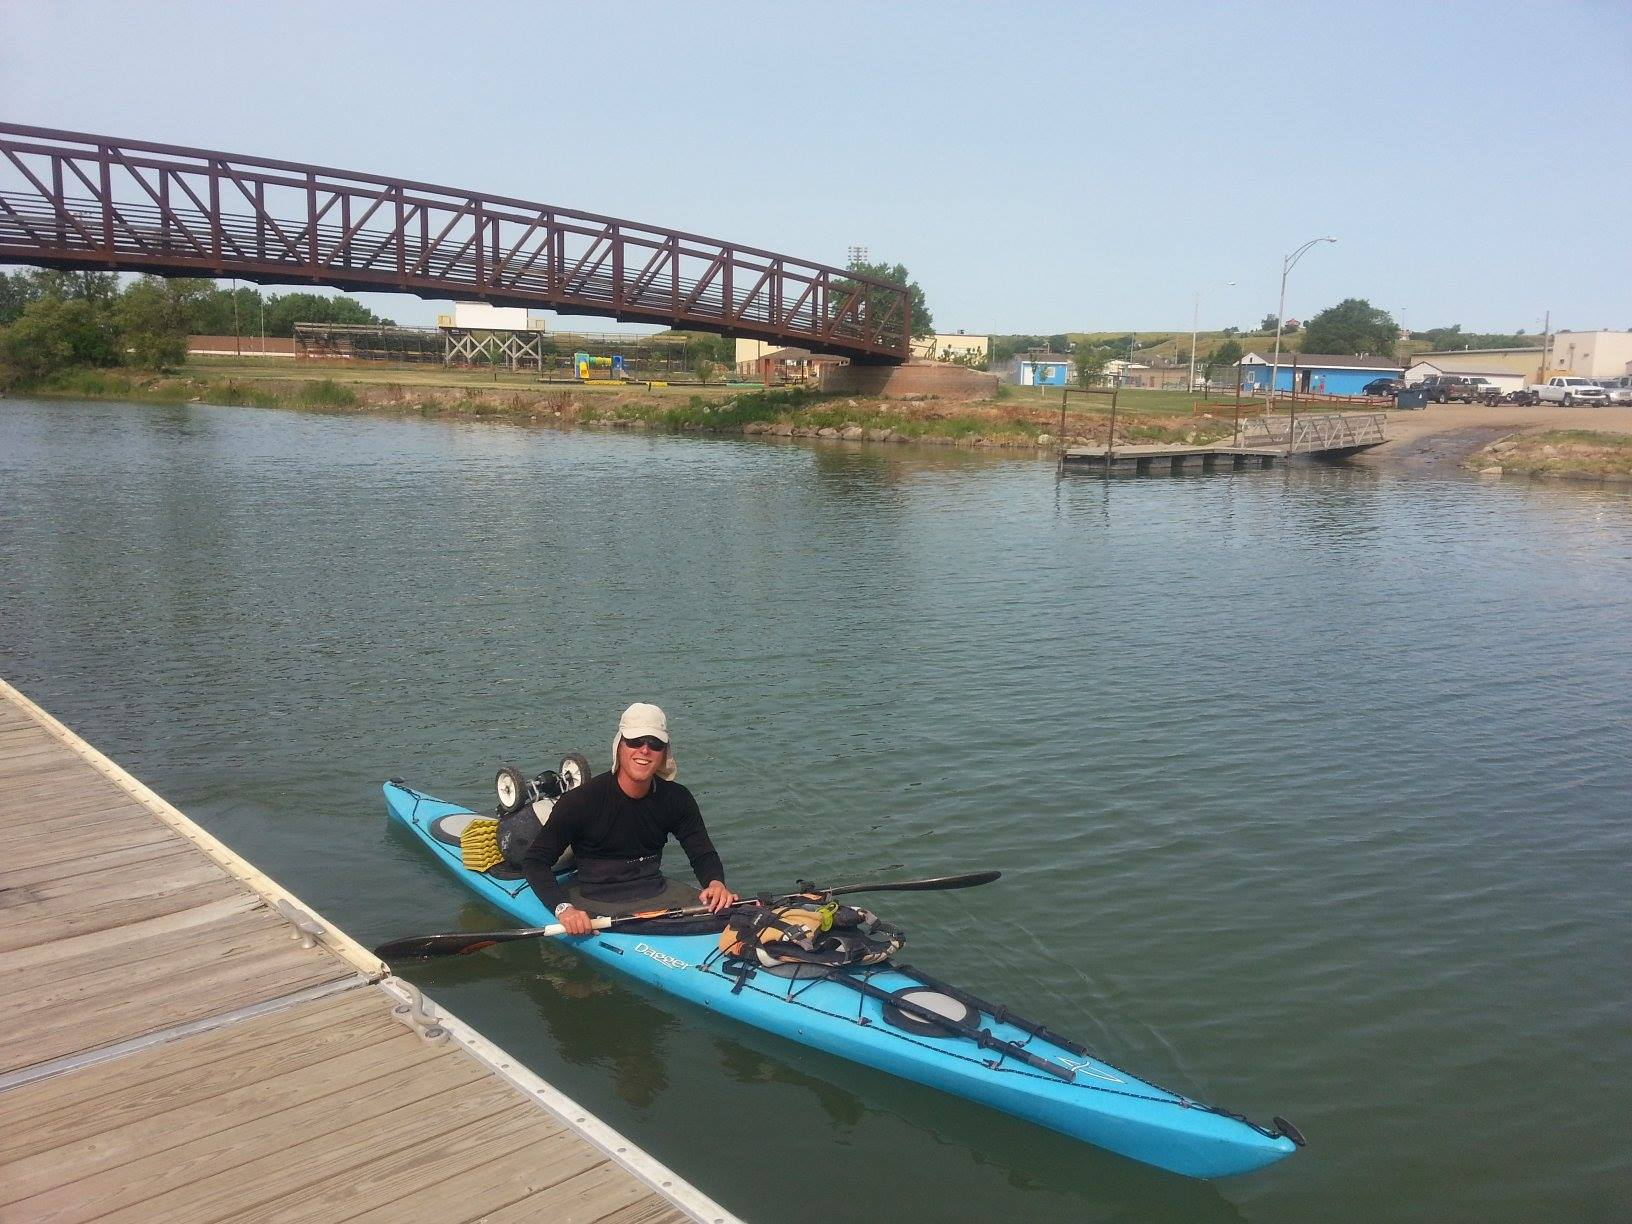 Gamache in Pierre, S.D., at the confluence of the Bad River and Missouri below Oahe Dam. Photo by Amanda Buzick.